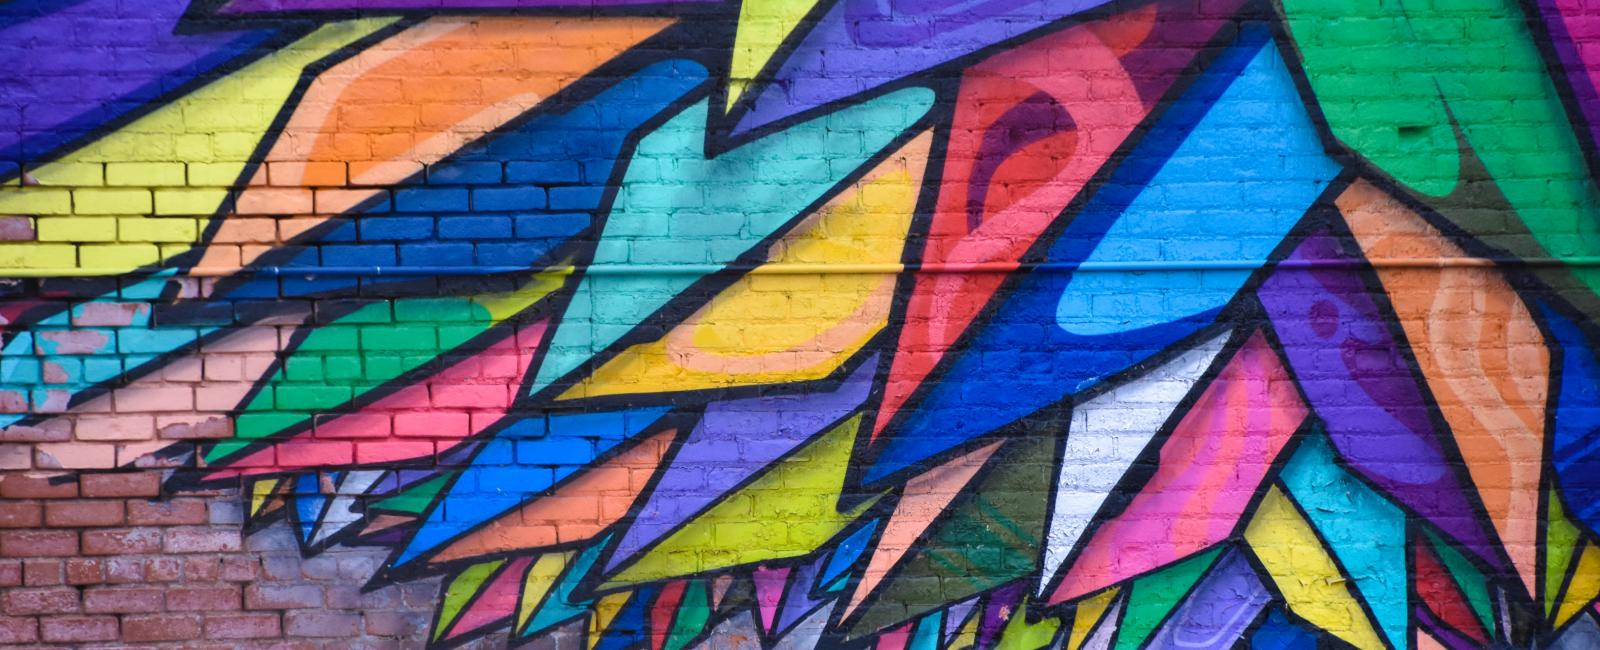 Mural on bricks